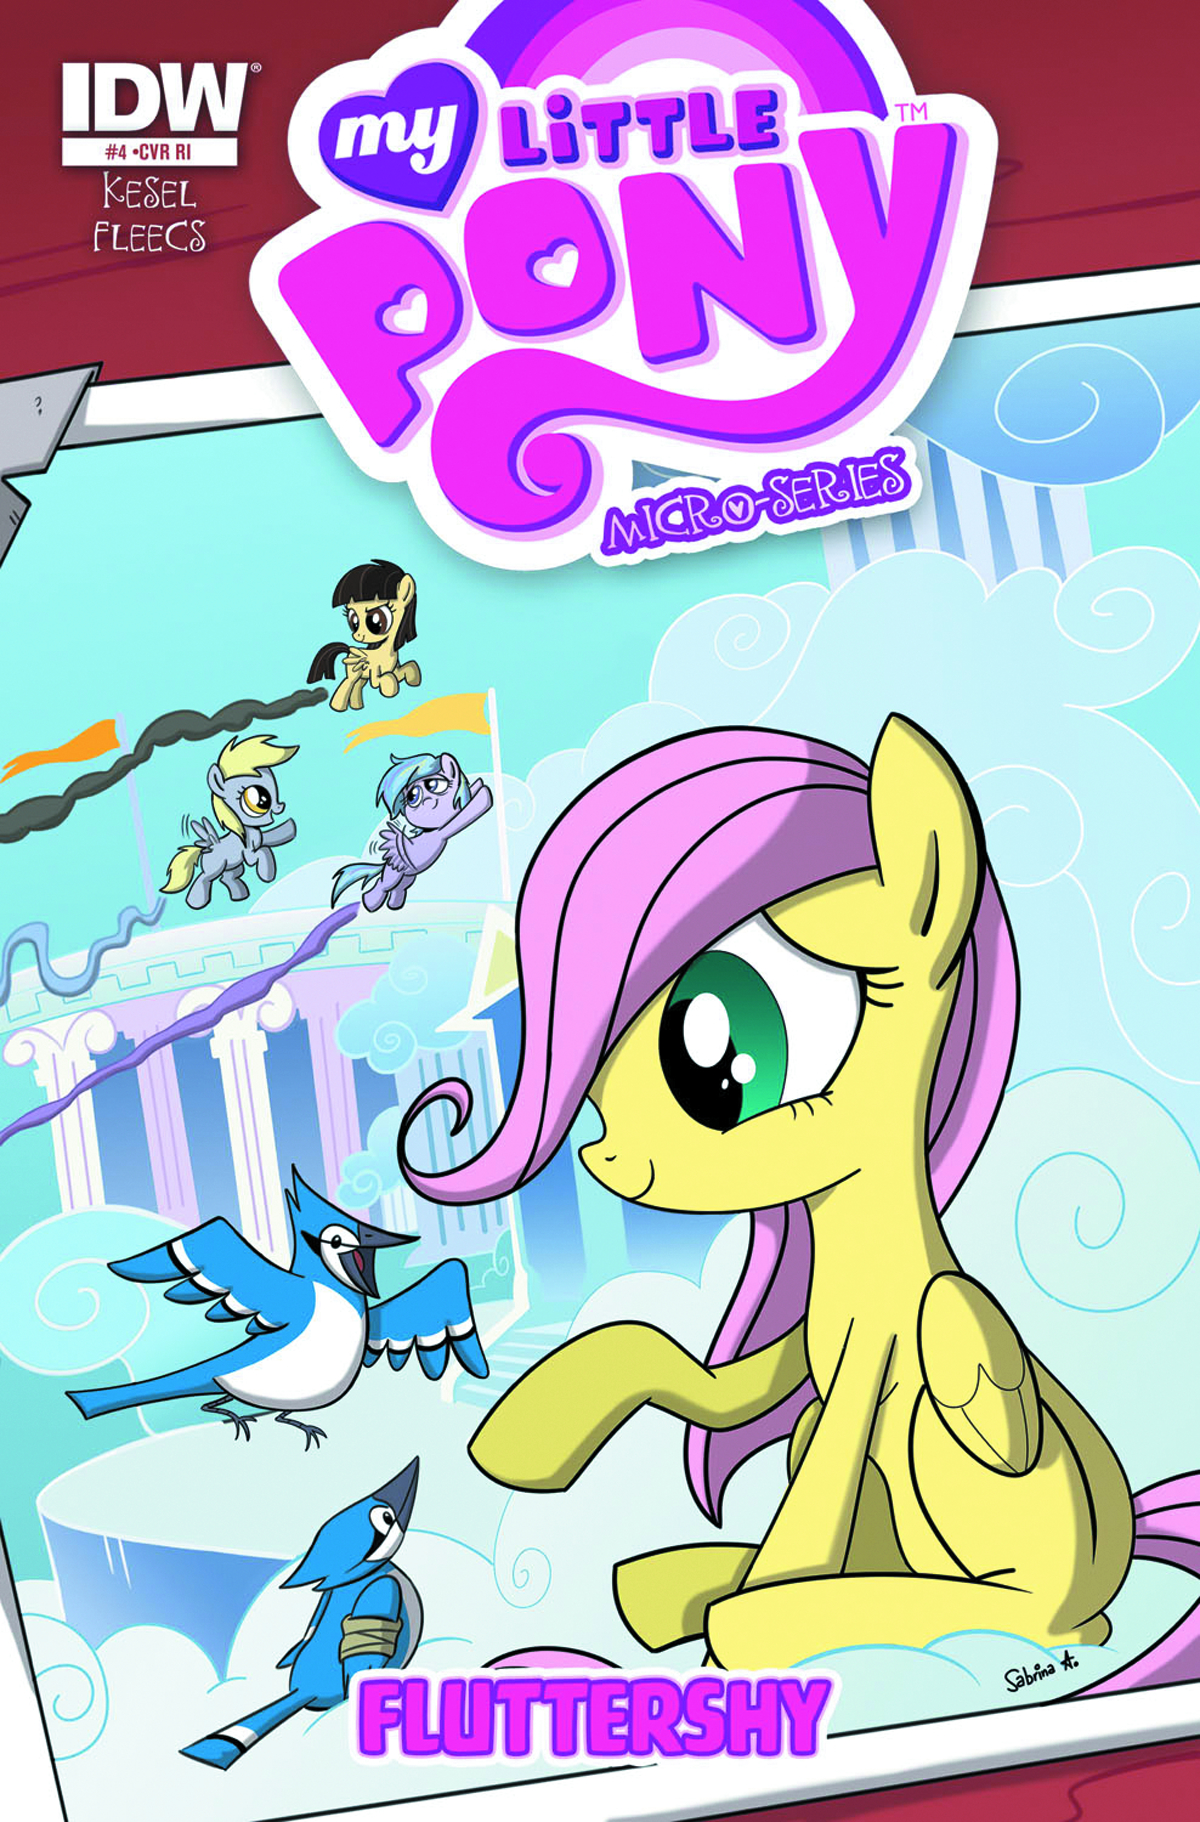 MY LITTLE PONY MICRO SERIES #4